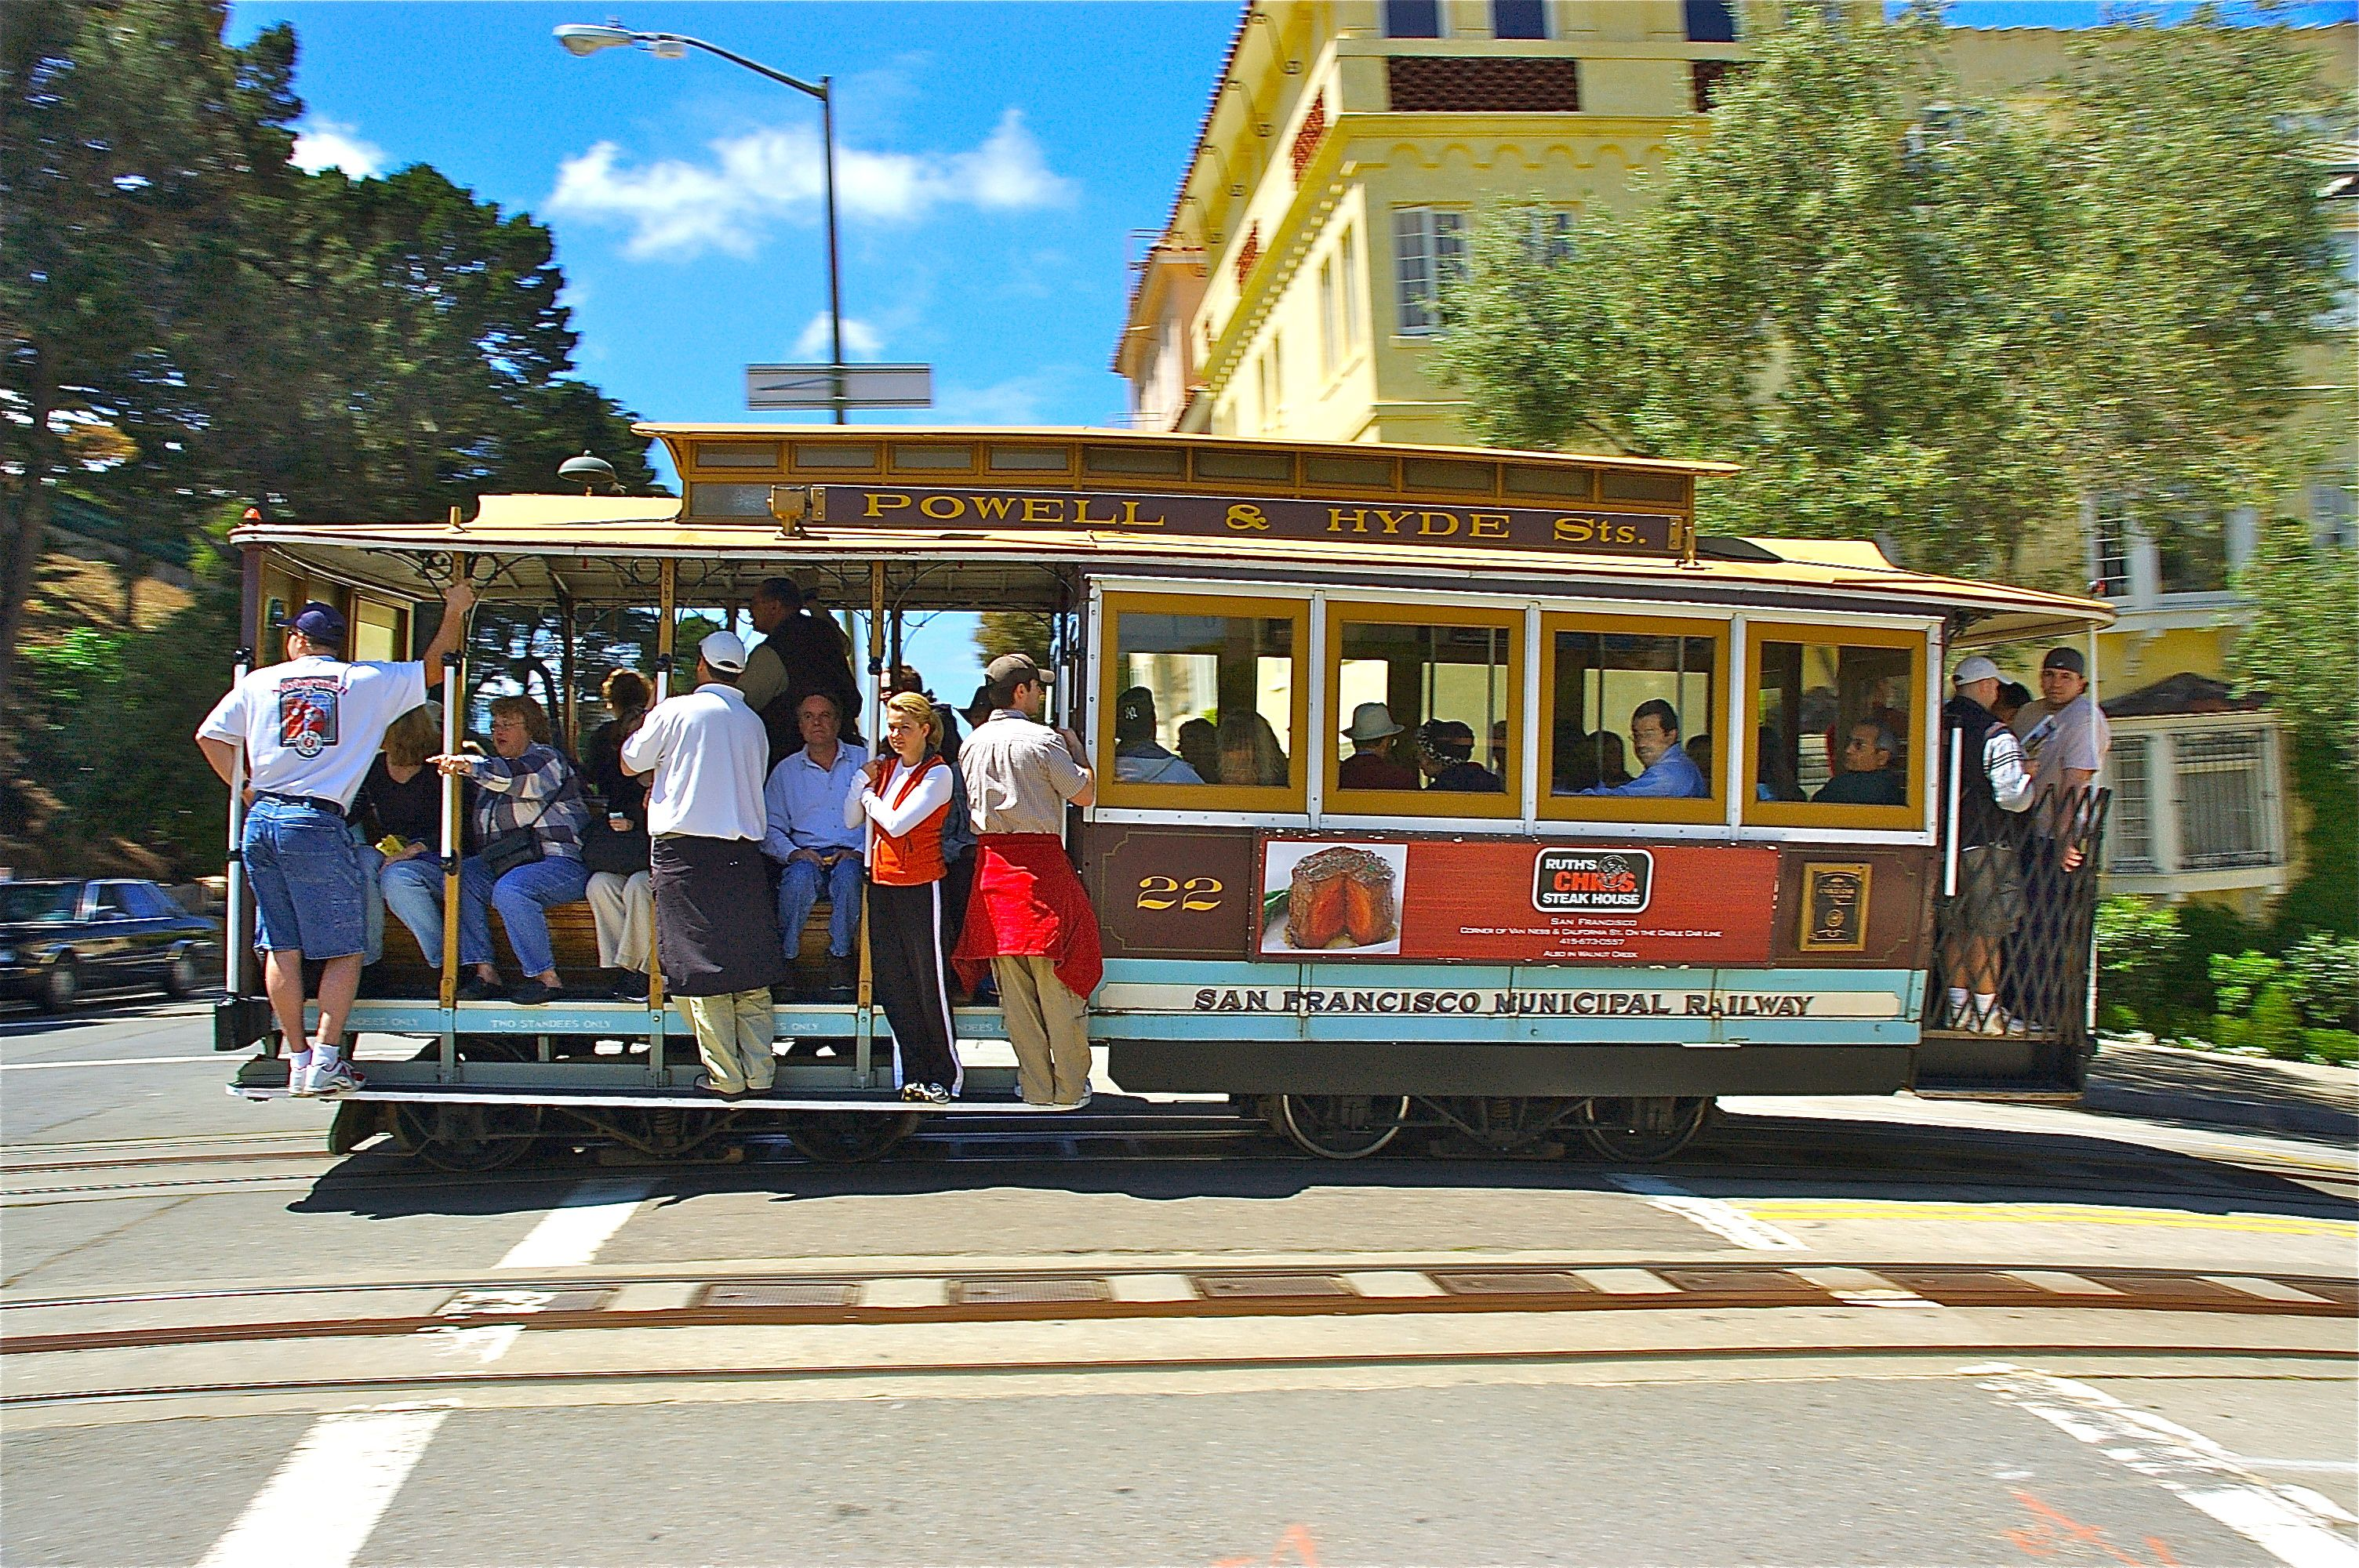 Trolley san francisco photo